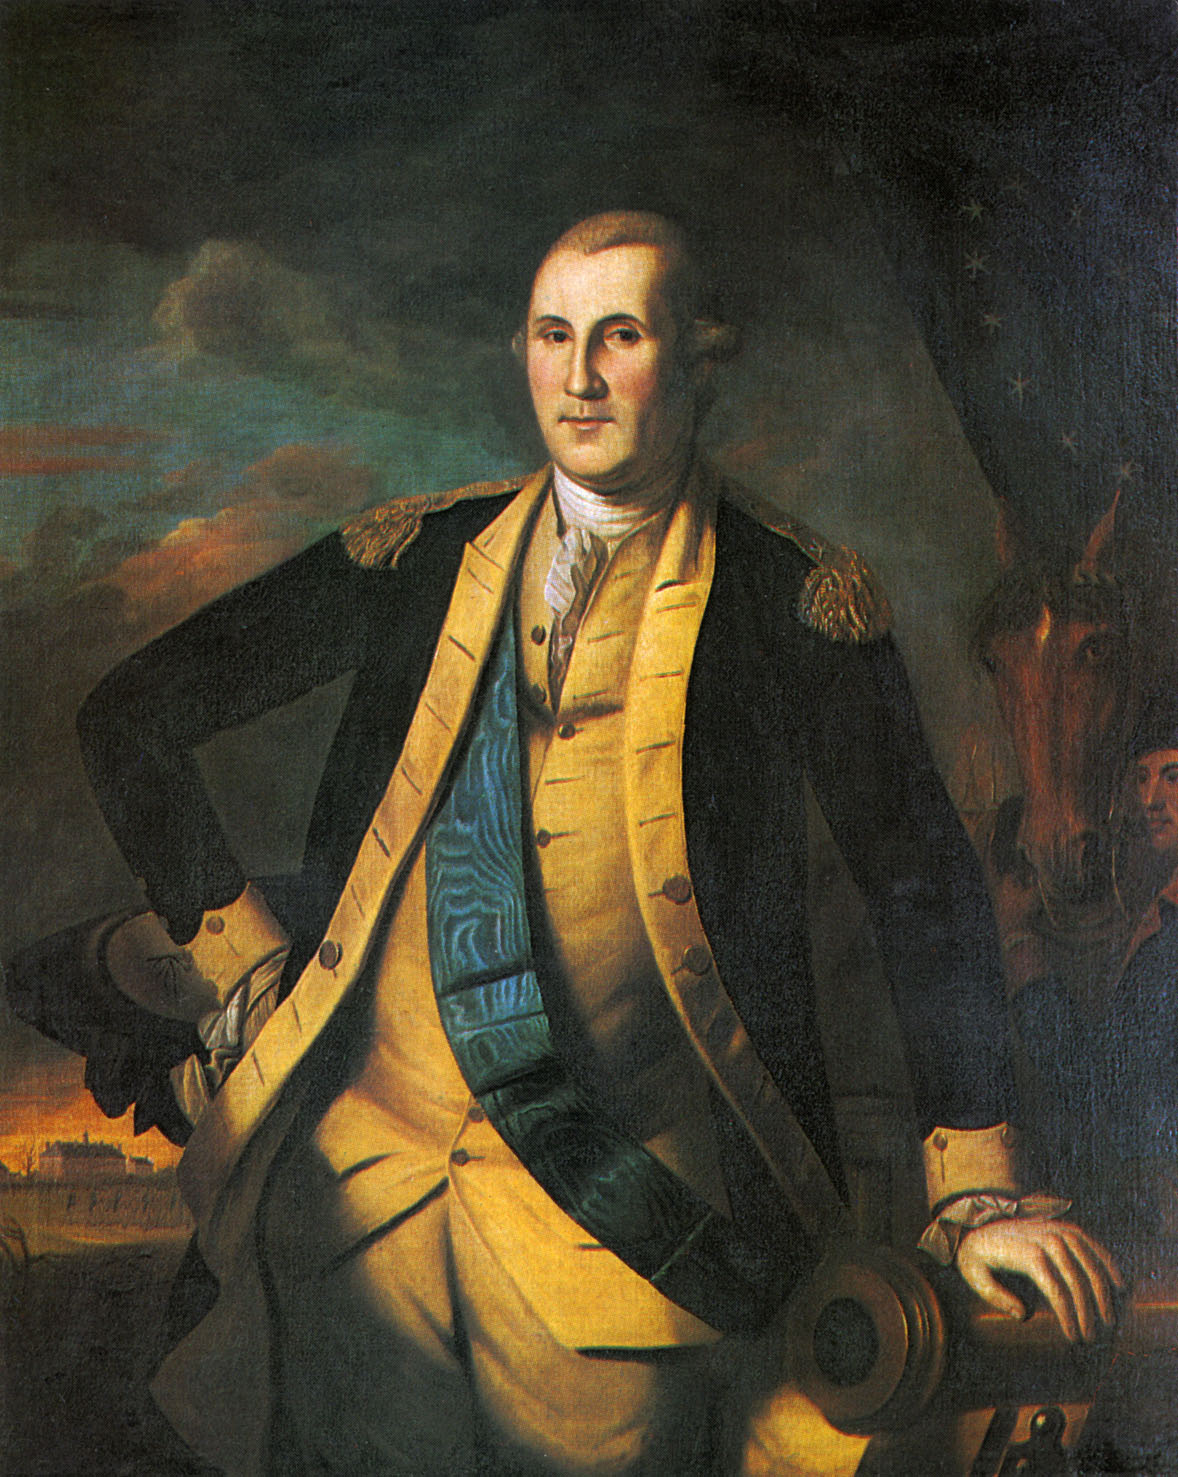 General George Washington - portrait of the first President of the United States (1789?97). 22 February 1732 - 14 December 1799. Painted by Charles Willson Peale, American painter, 15 April 1741 - 22 February 1827.